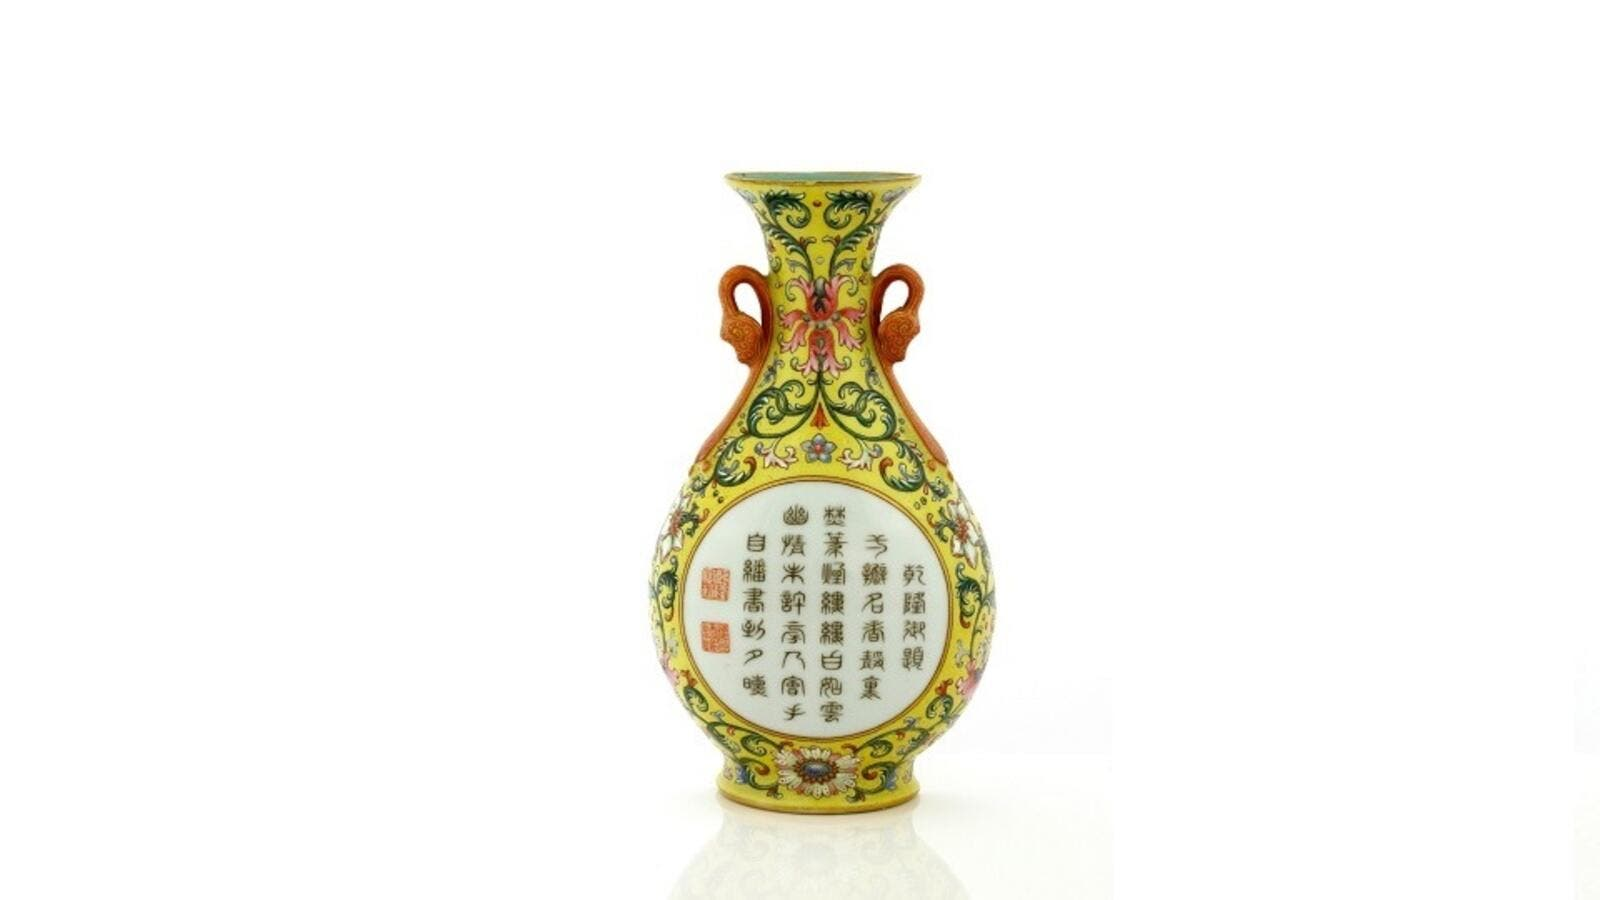 The 8-inch vase once belonged to the Qianlong Emperor who ruled China from 1735 to 1796.